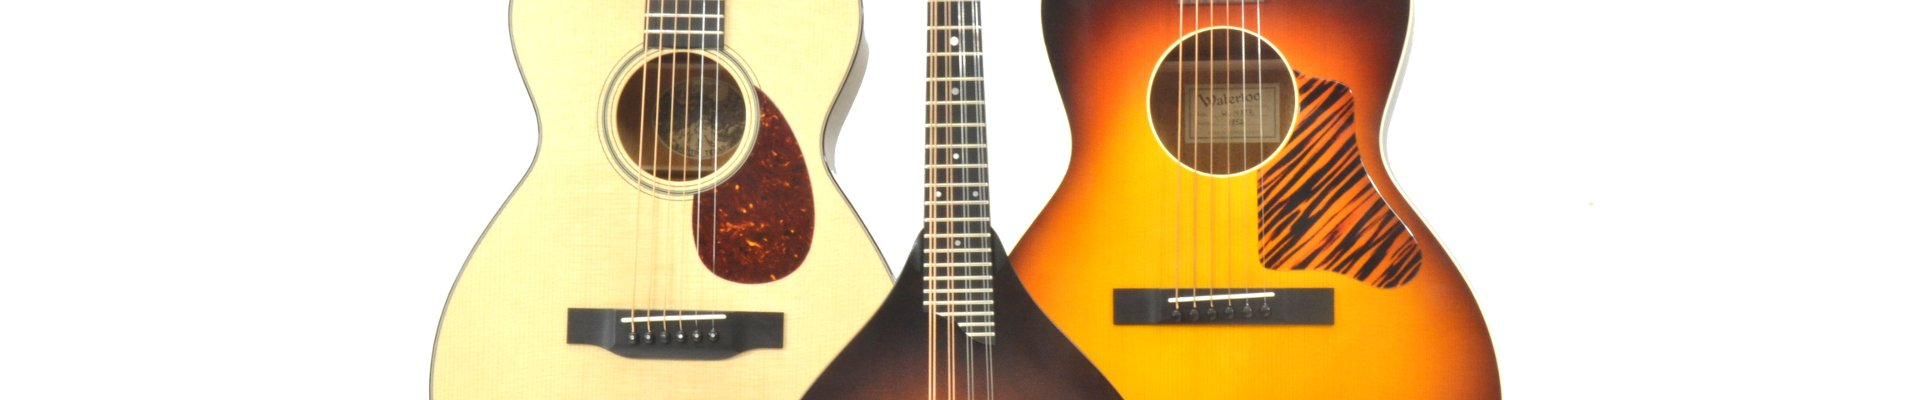 Collings Guitars and Mandolins Banner